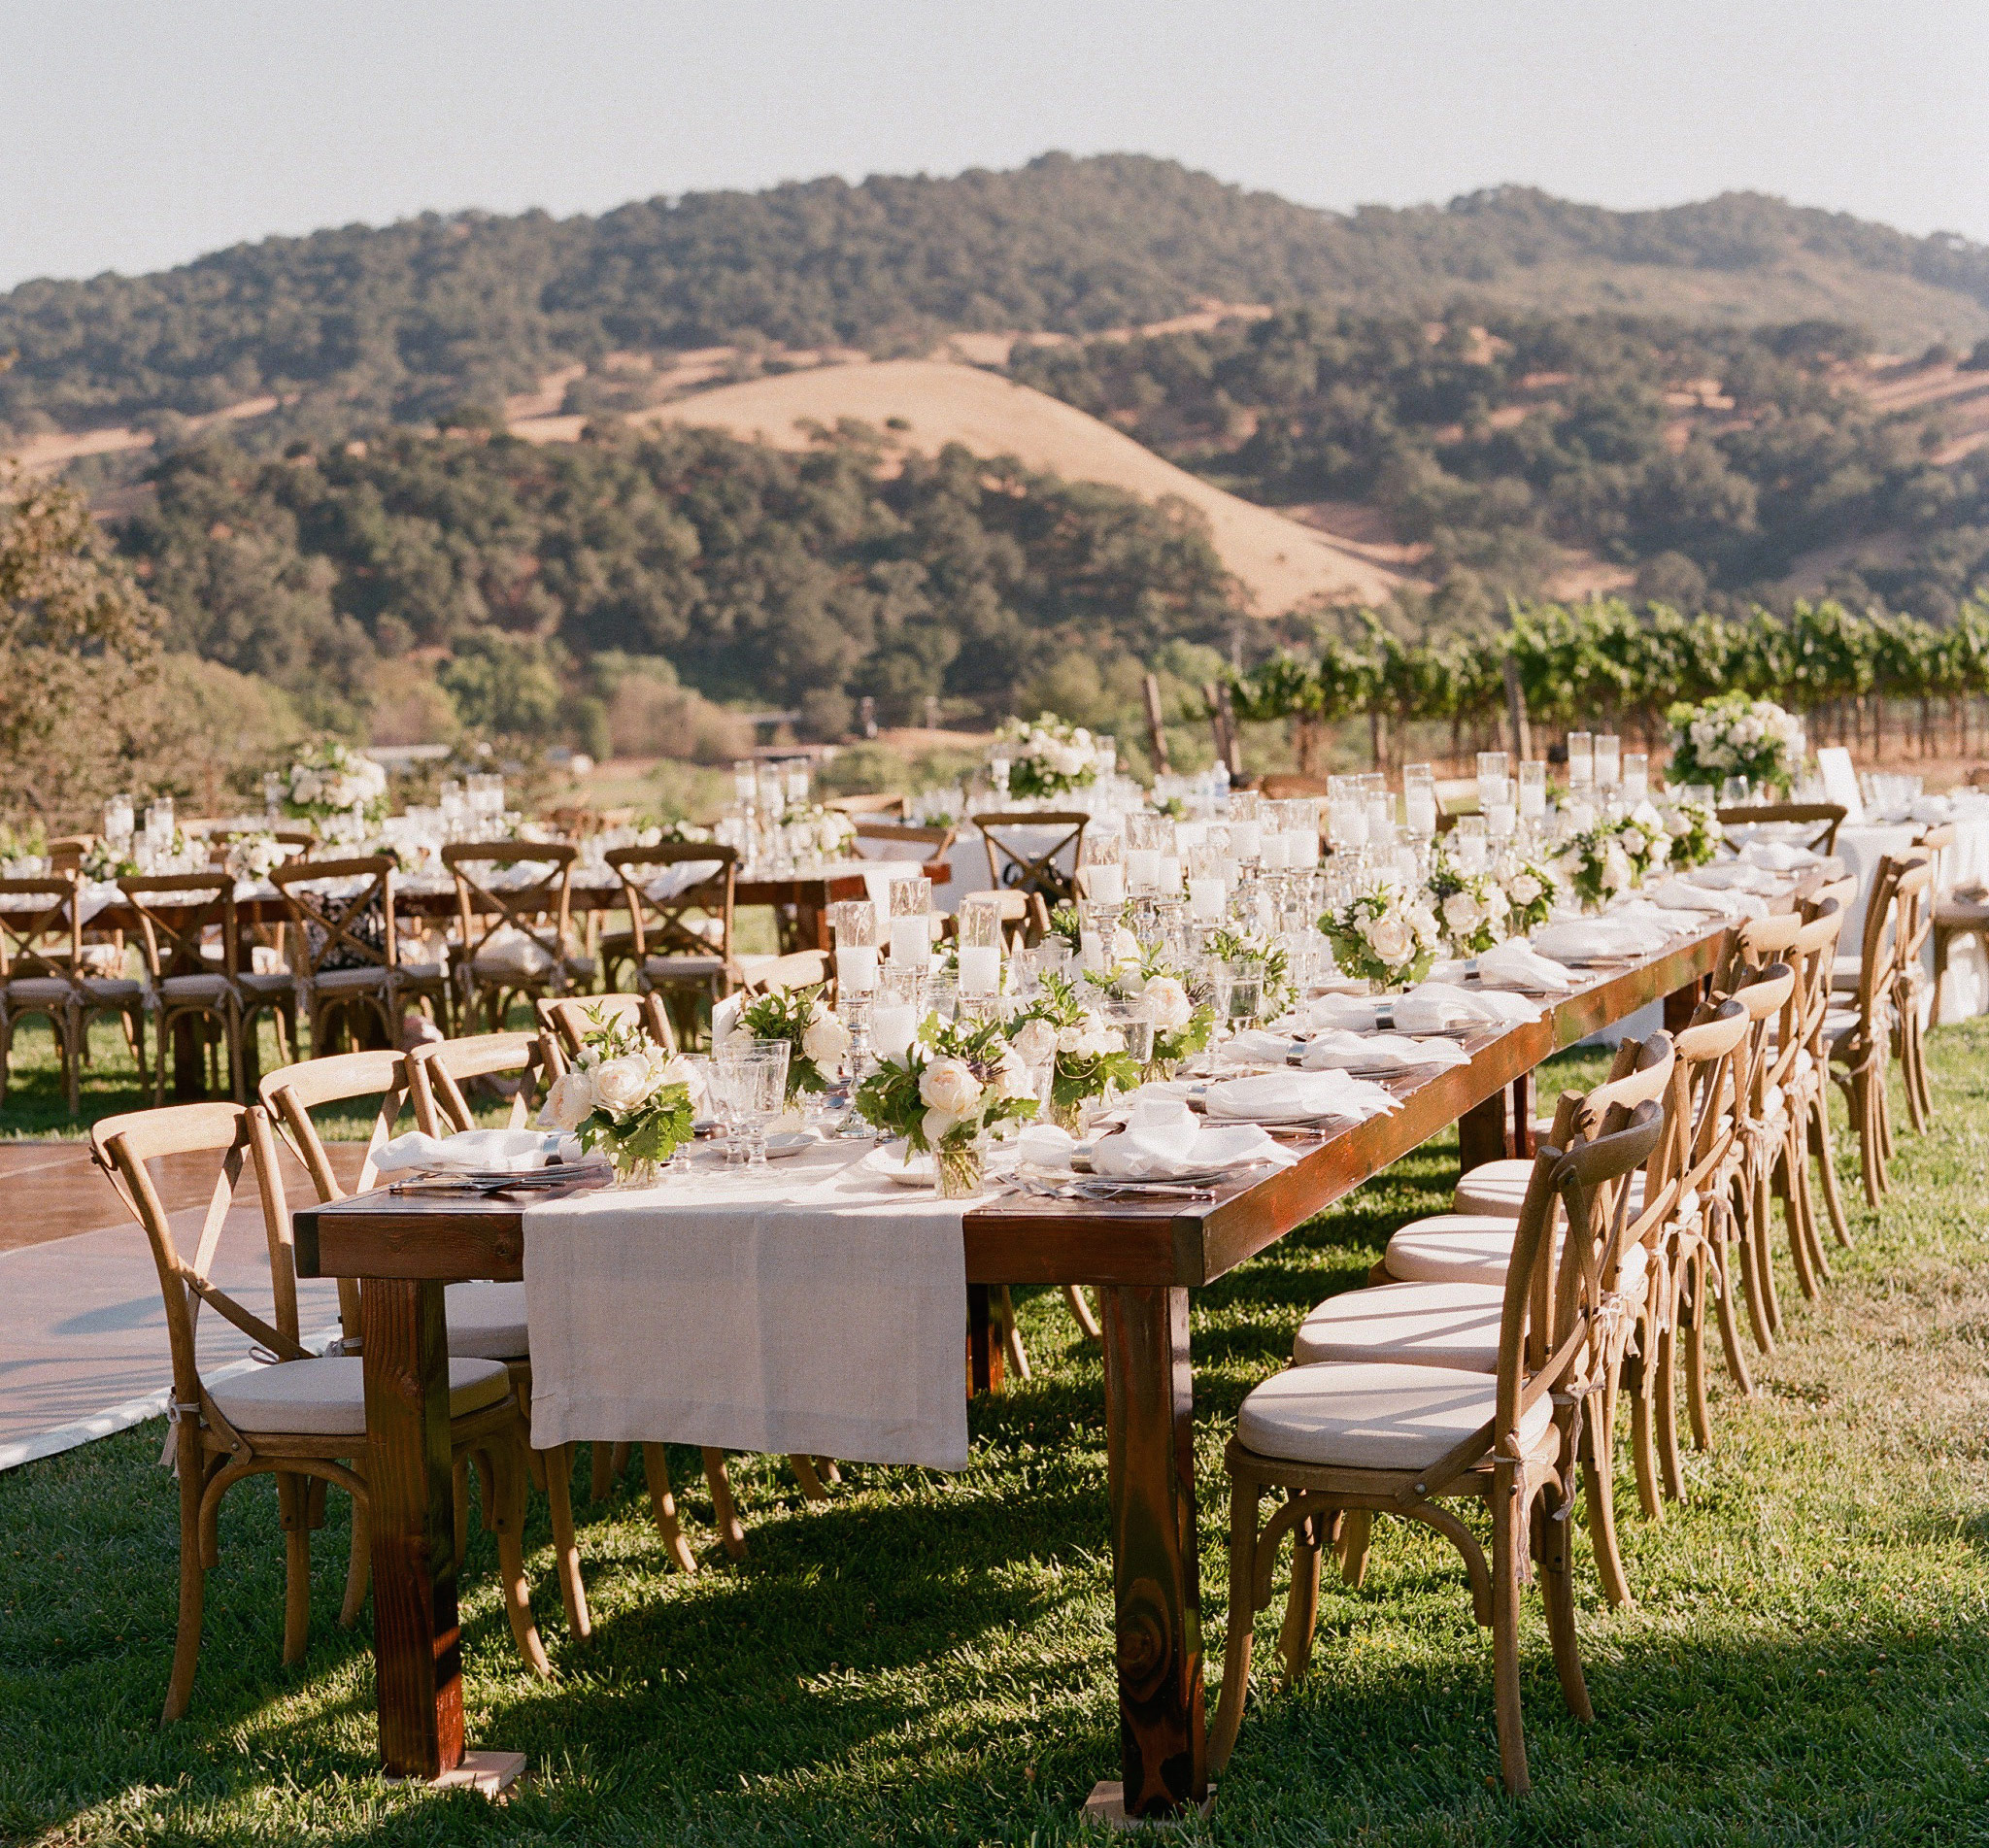 Rustic wedding reception table centerpieces at winery vineyard wedding